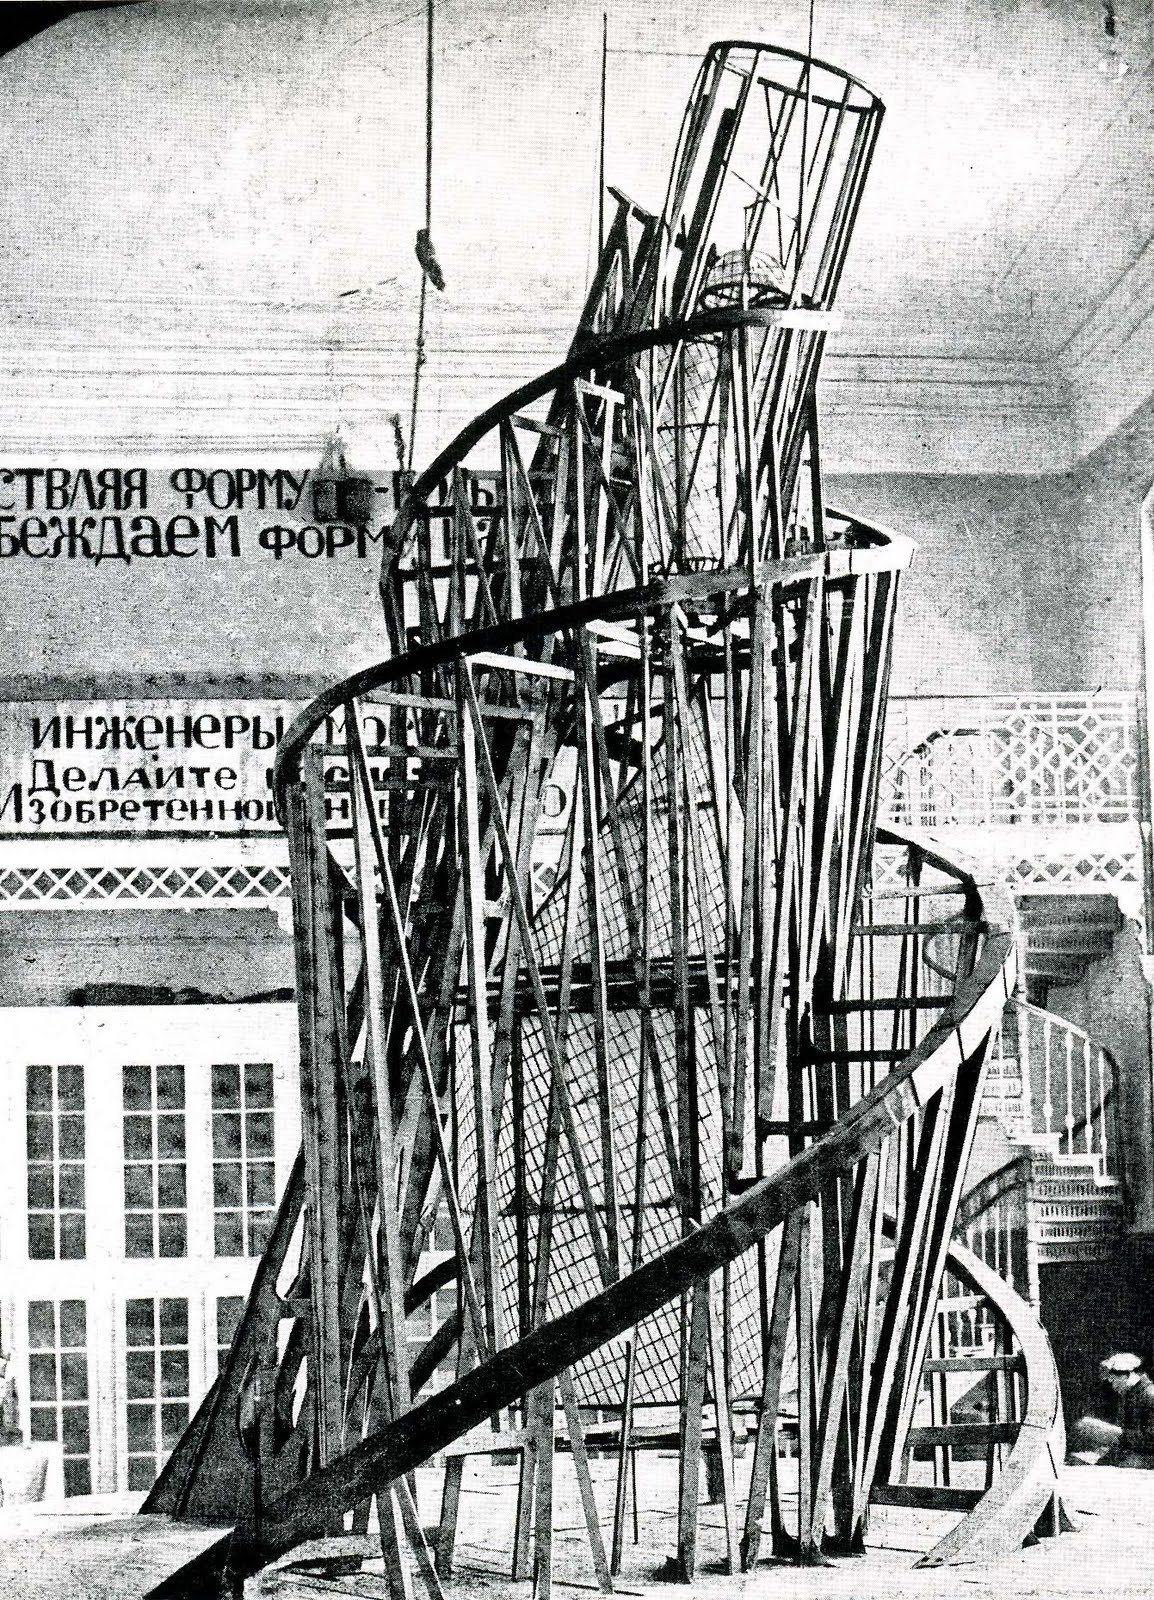 Vladimir Tatlin - Model for the Monument to the Third International, 1919-20. Wood, iron and glass